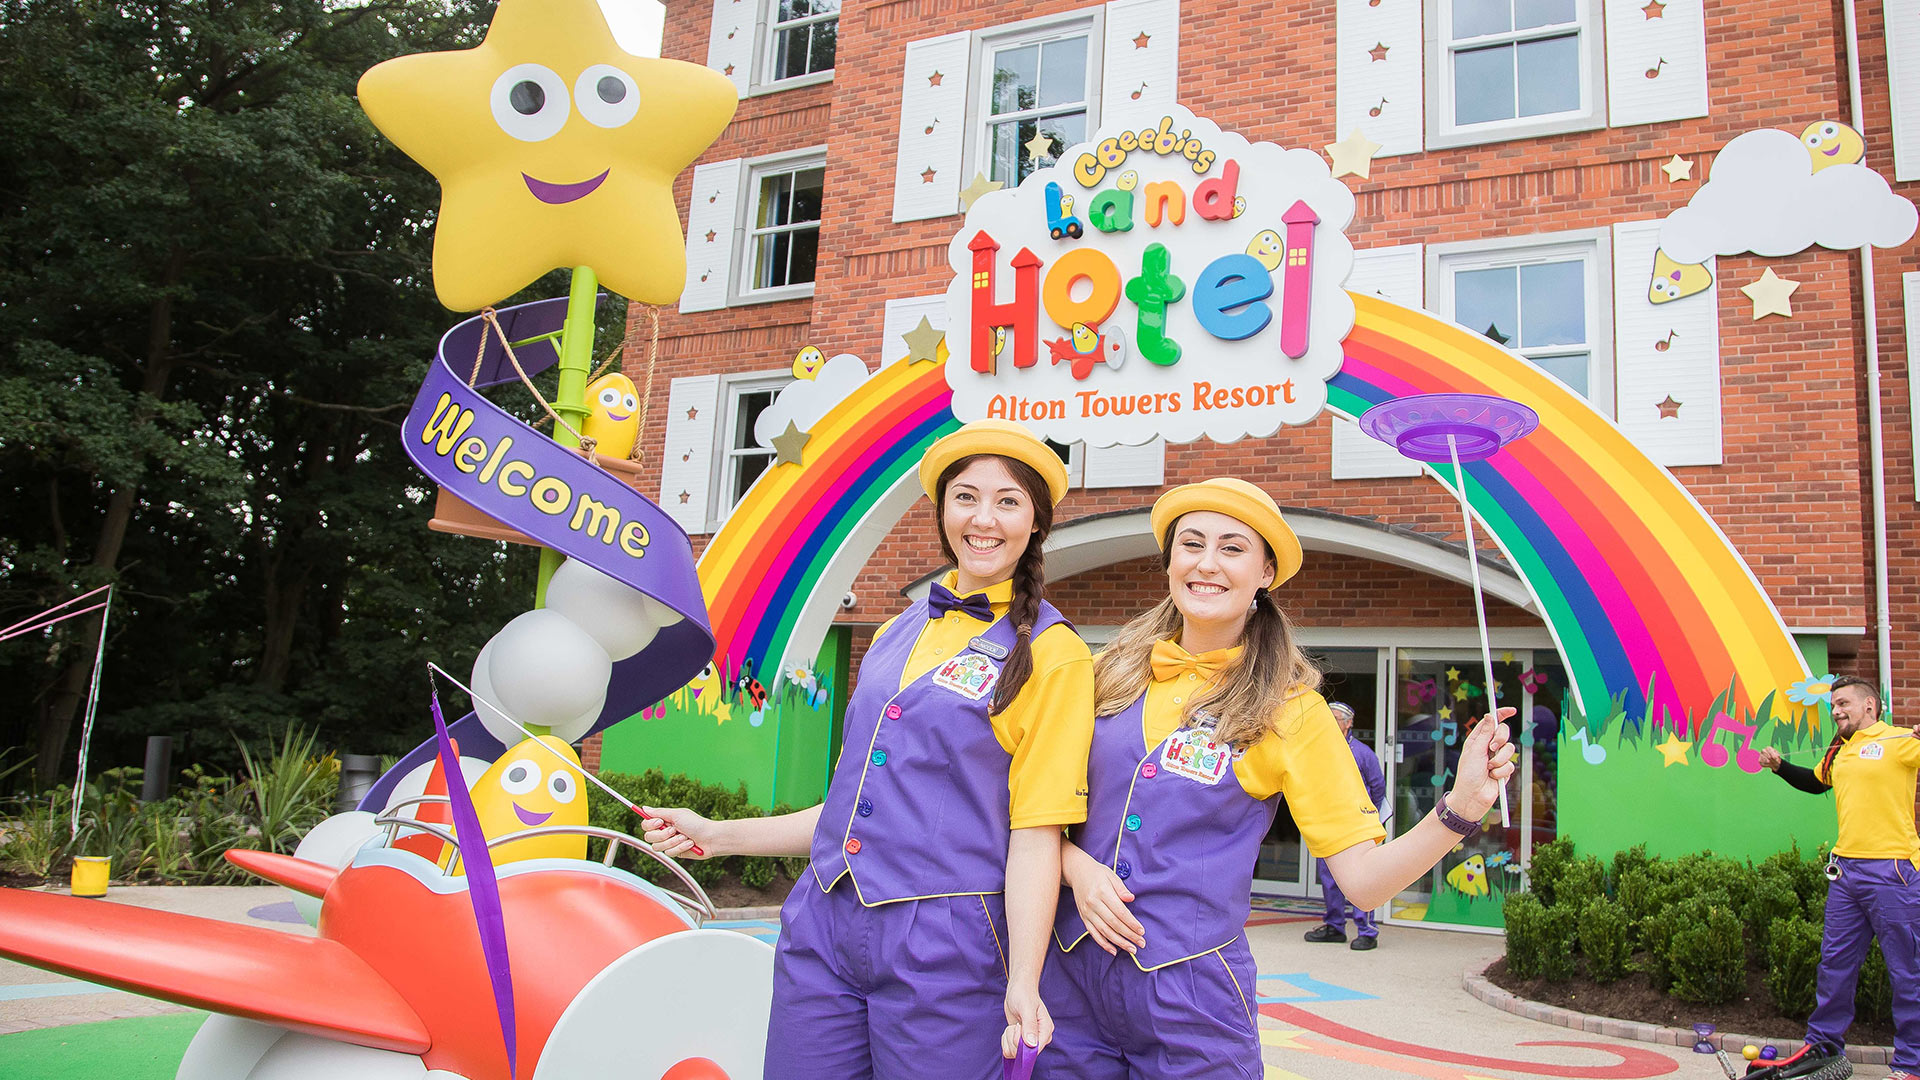 Cbeebies Land Hotel Exterior